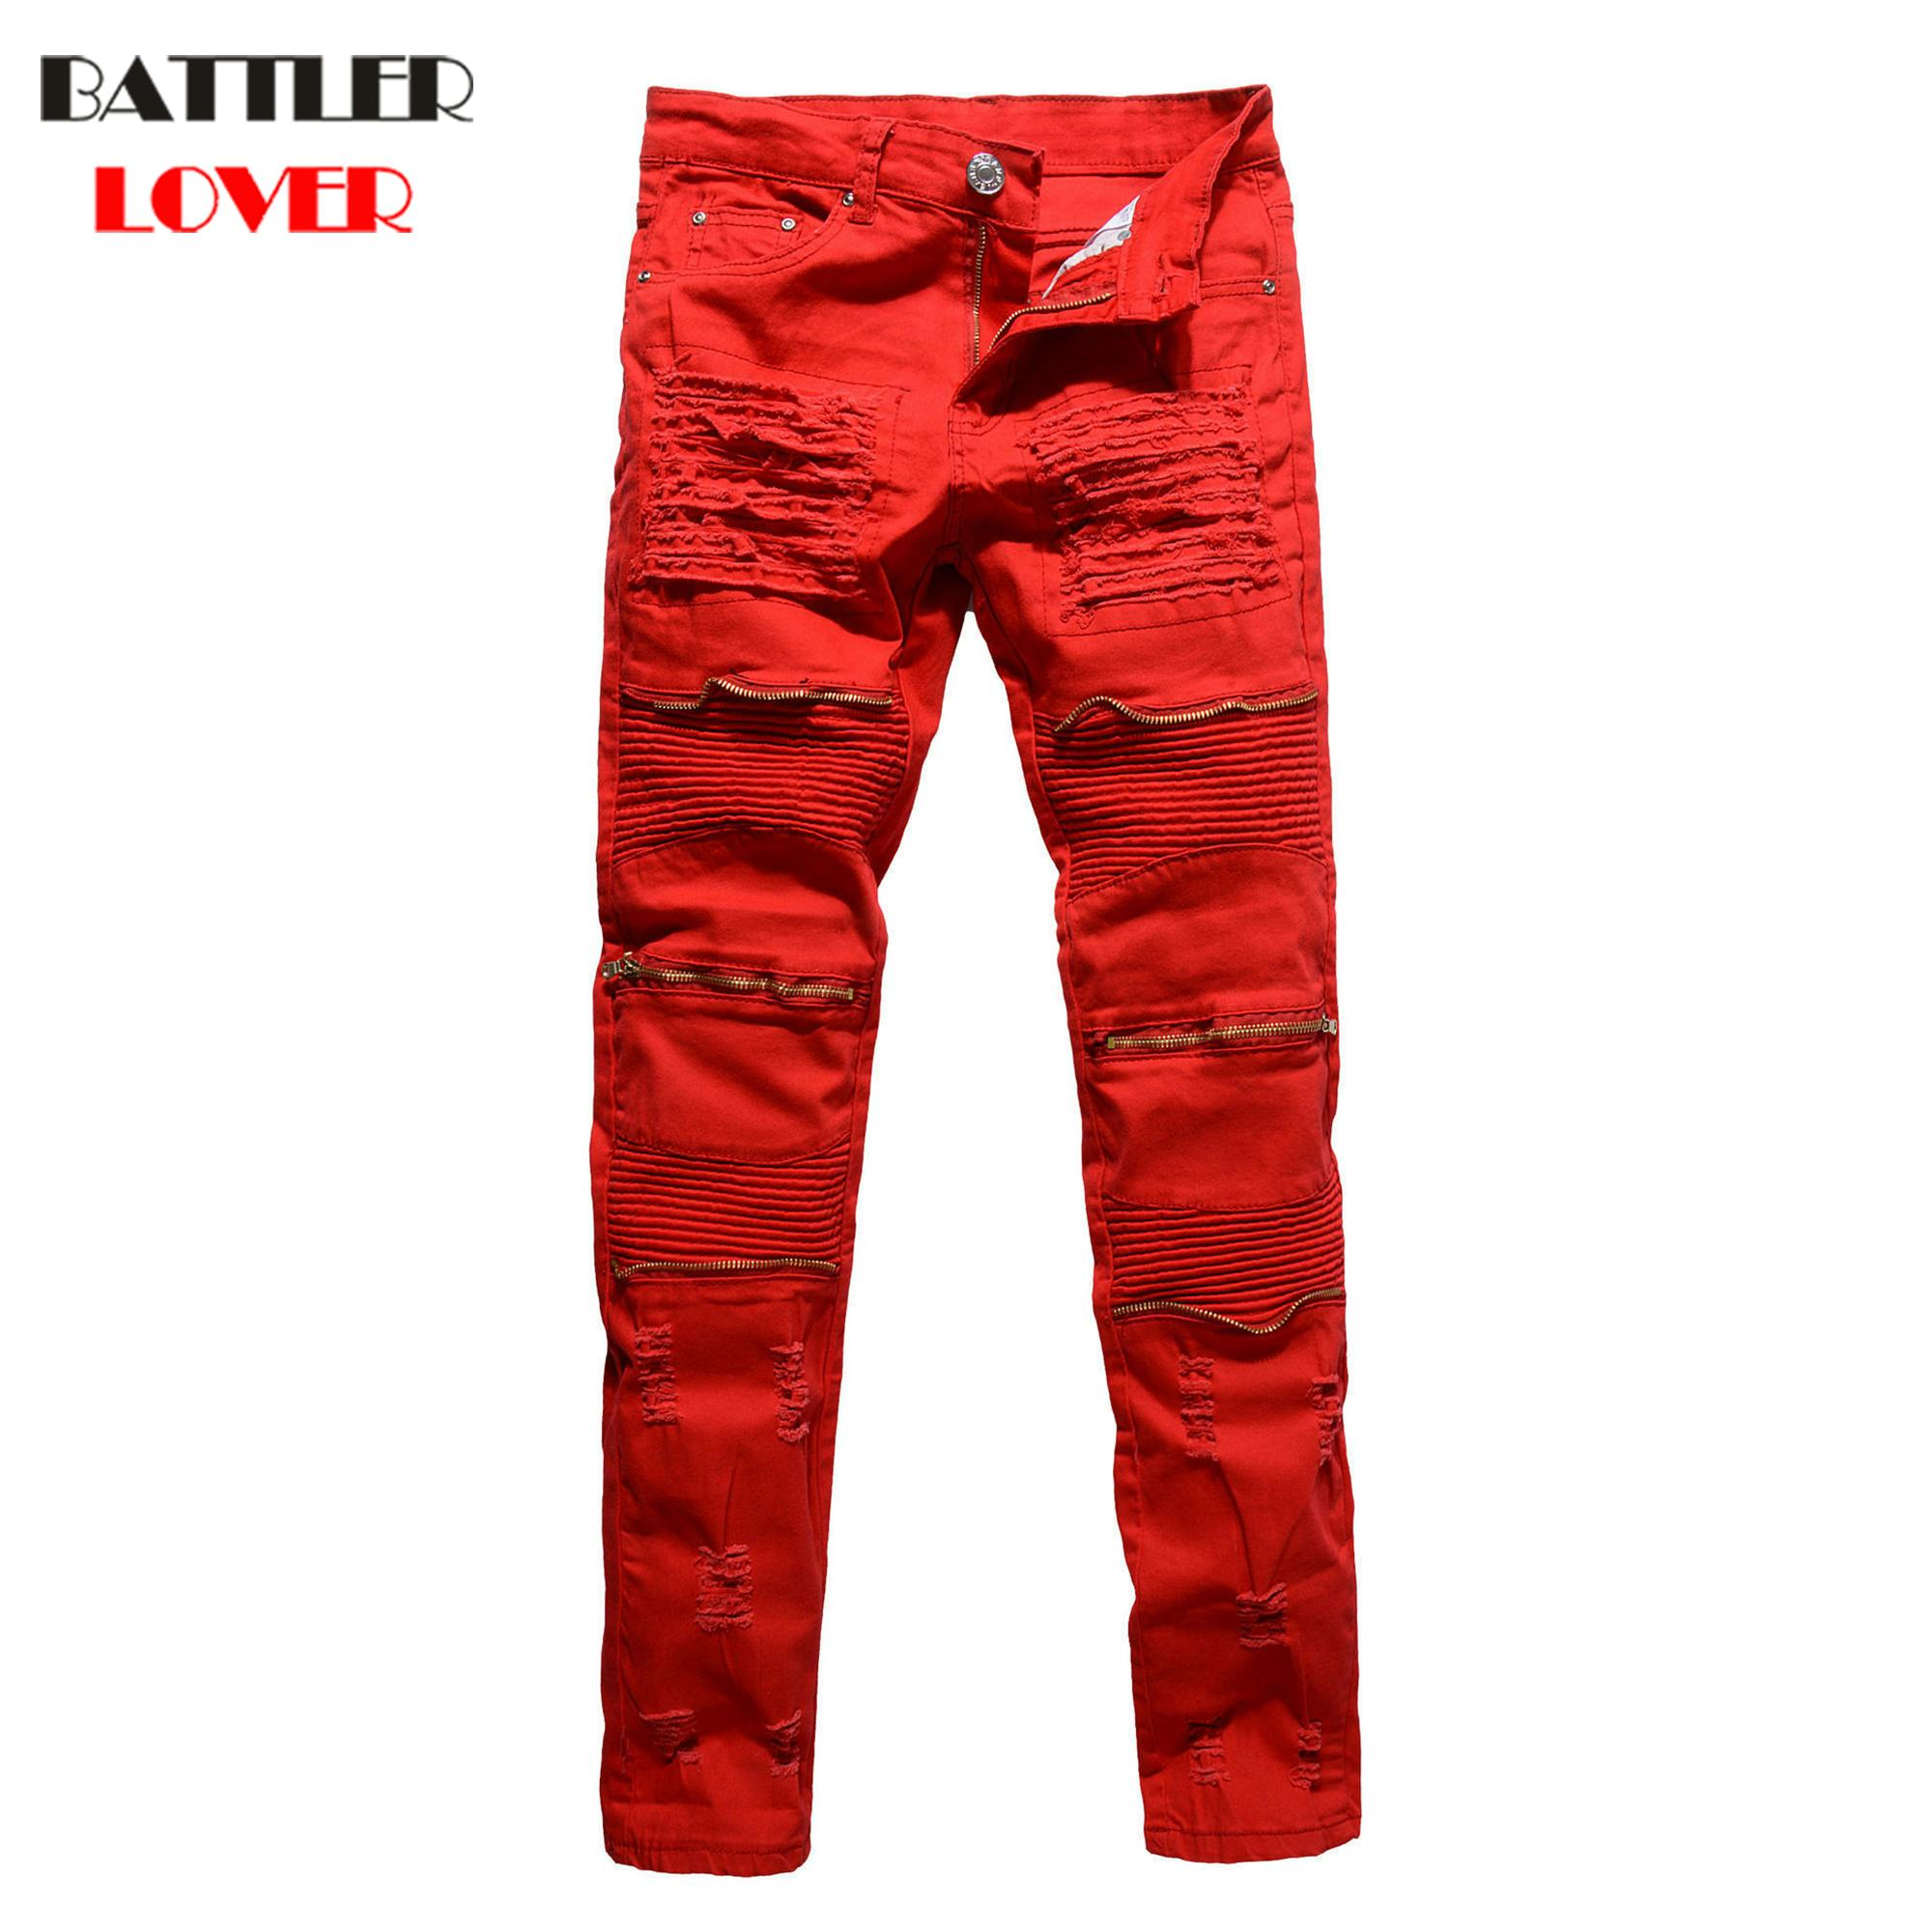 Discount Jeans Men Pants Fear God Trousers Denim Motorcycle Pant Boost Biker Man Masculina Pleated Zipper Skinny Slim Fit High Quality From China